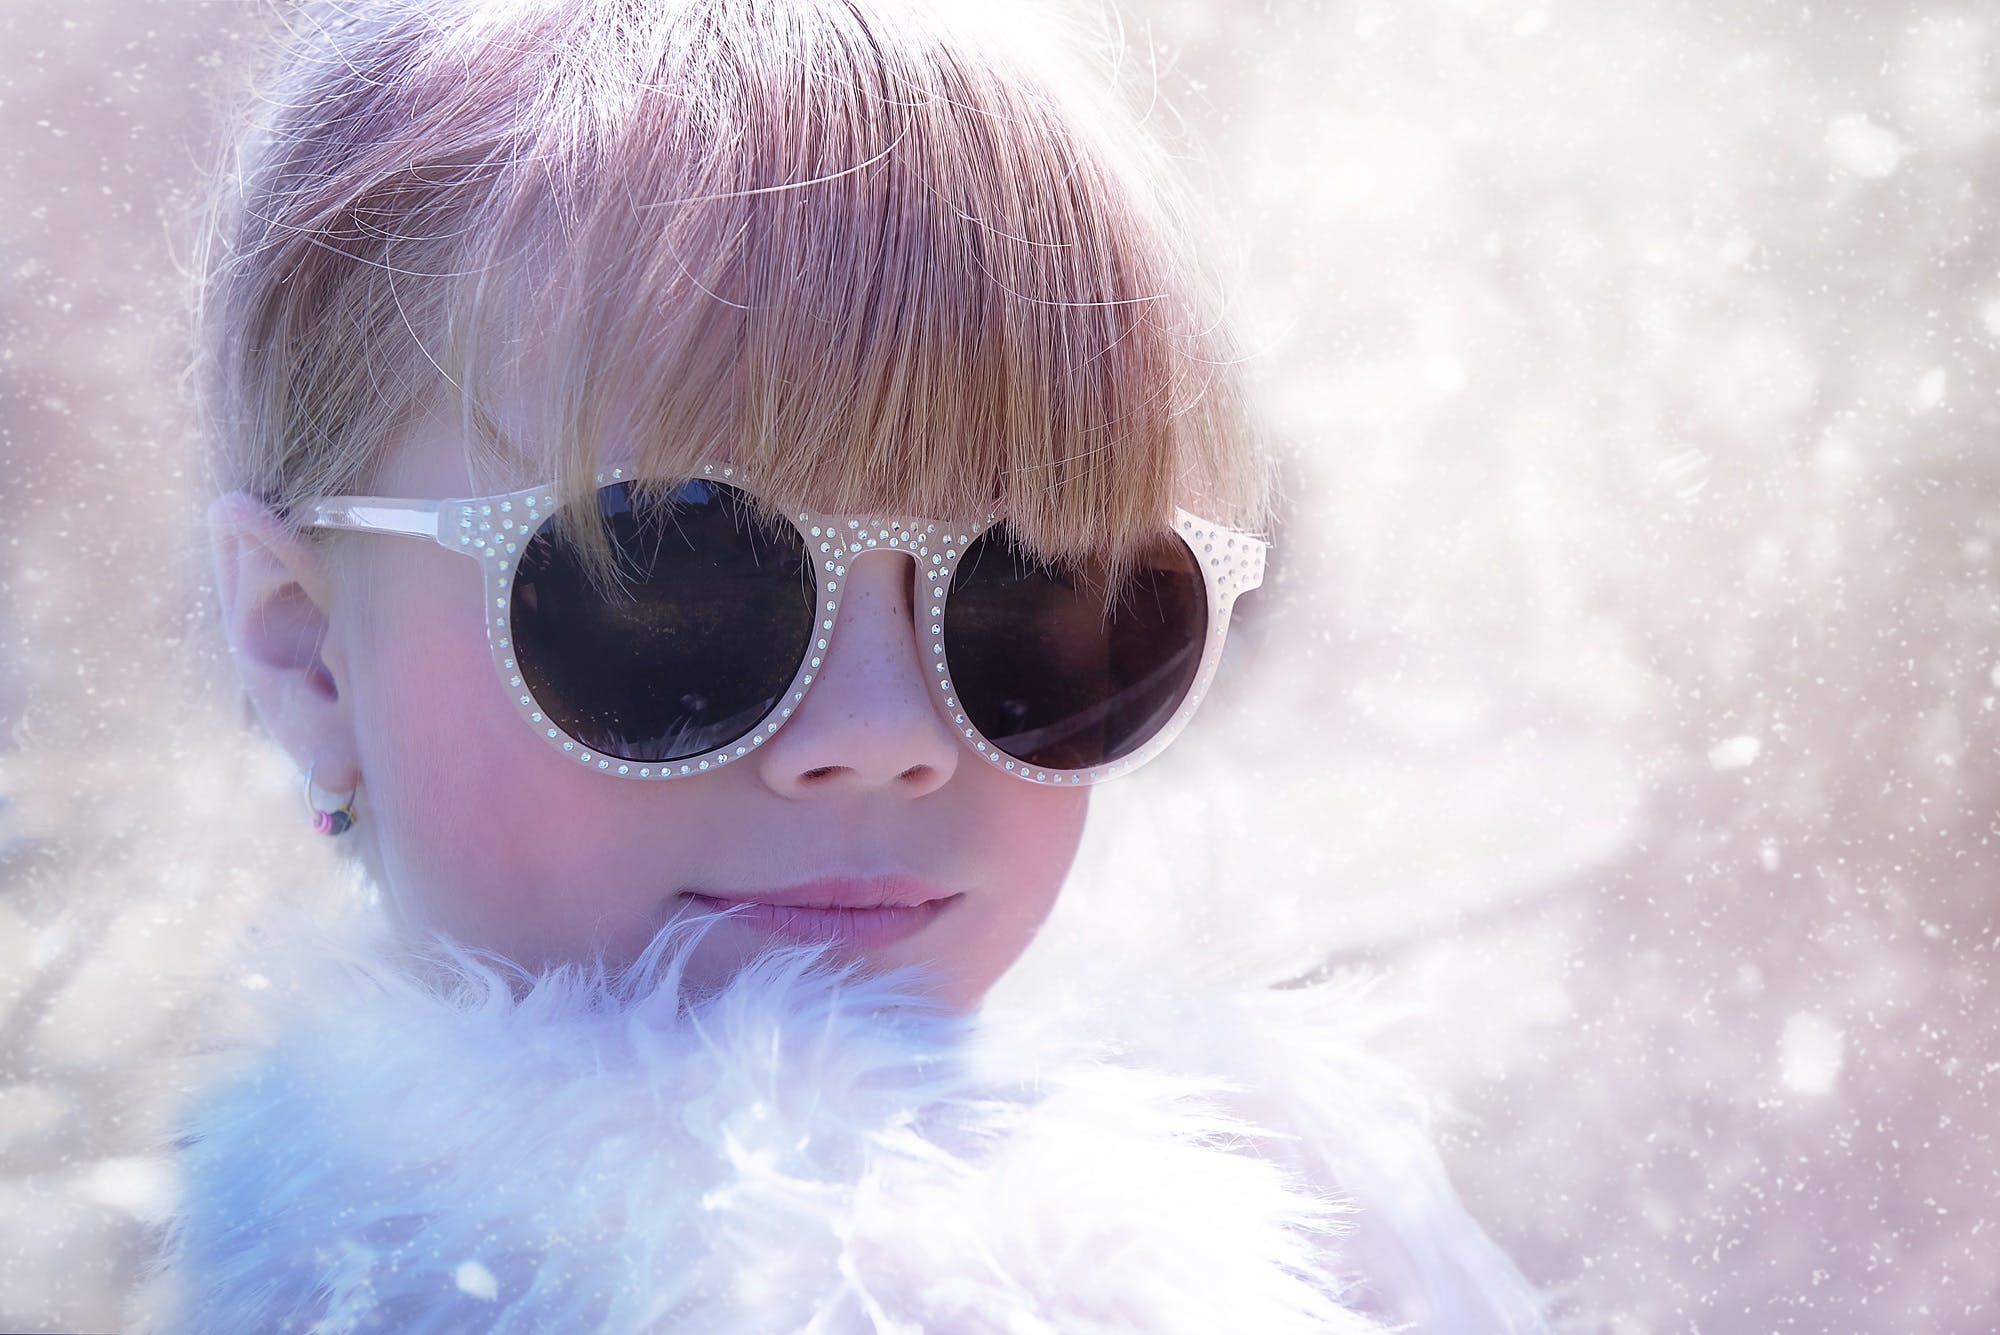 Woman With Sunglasses in White Fur Shirt